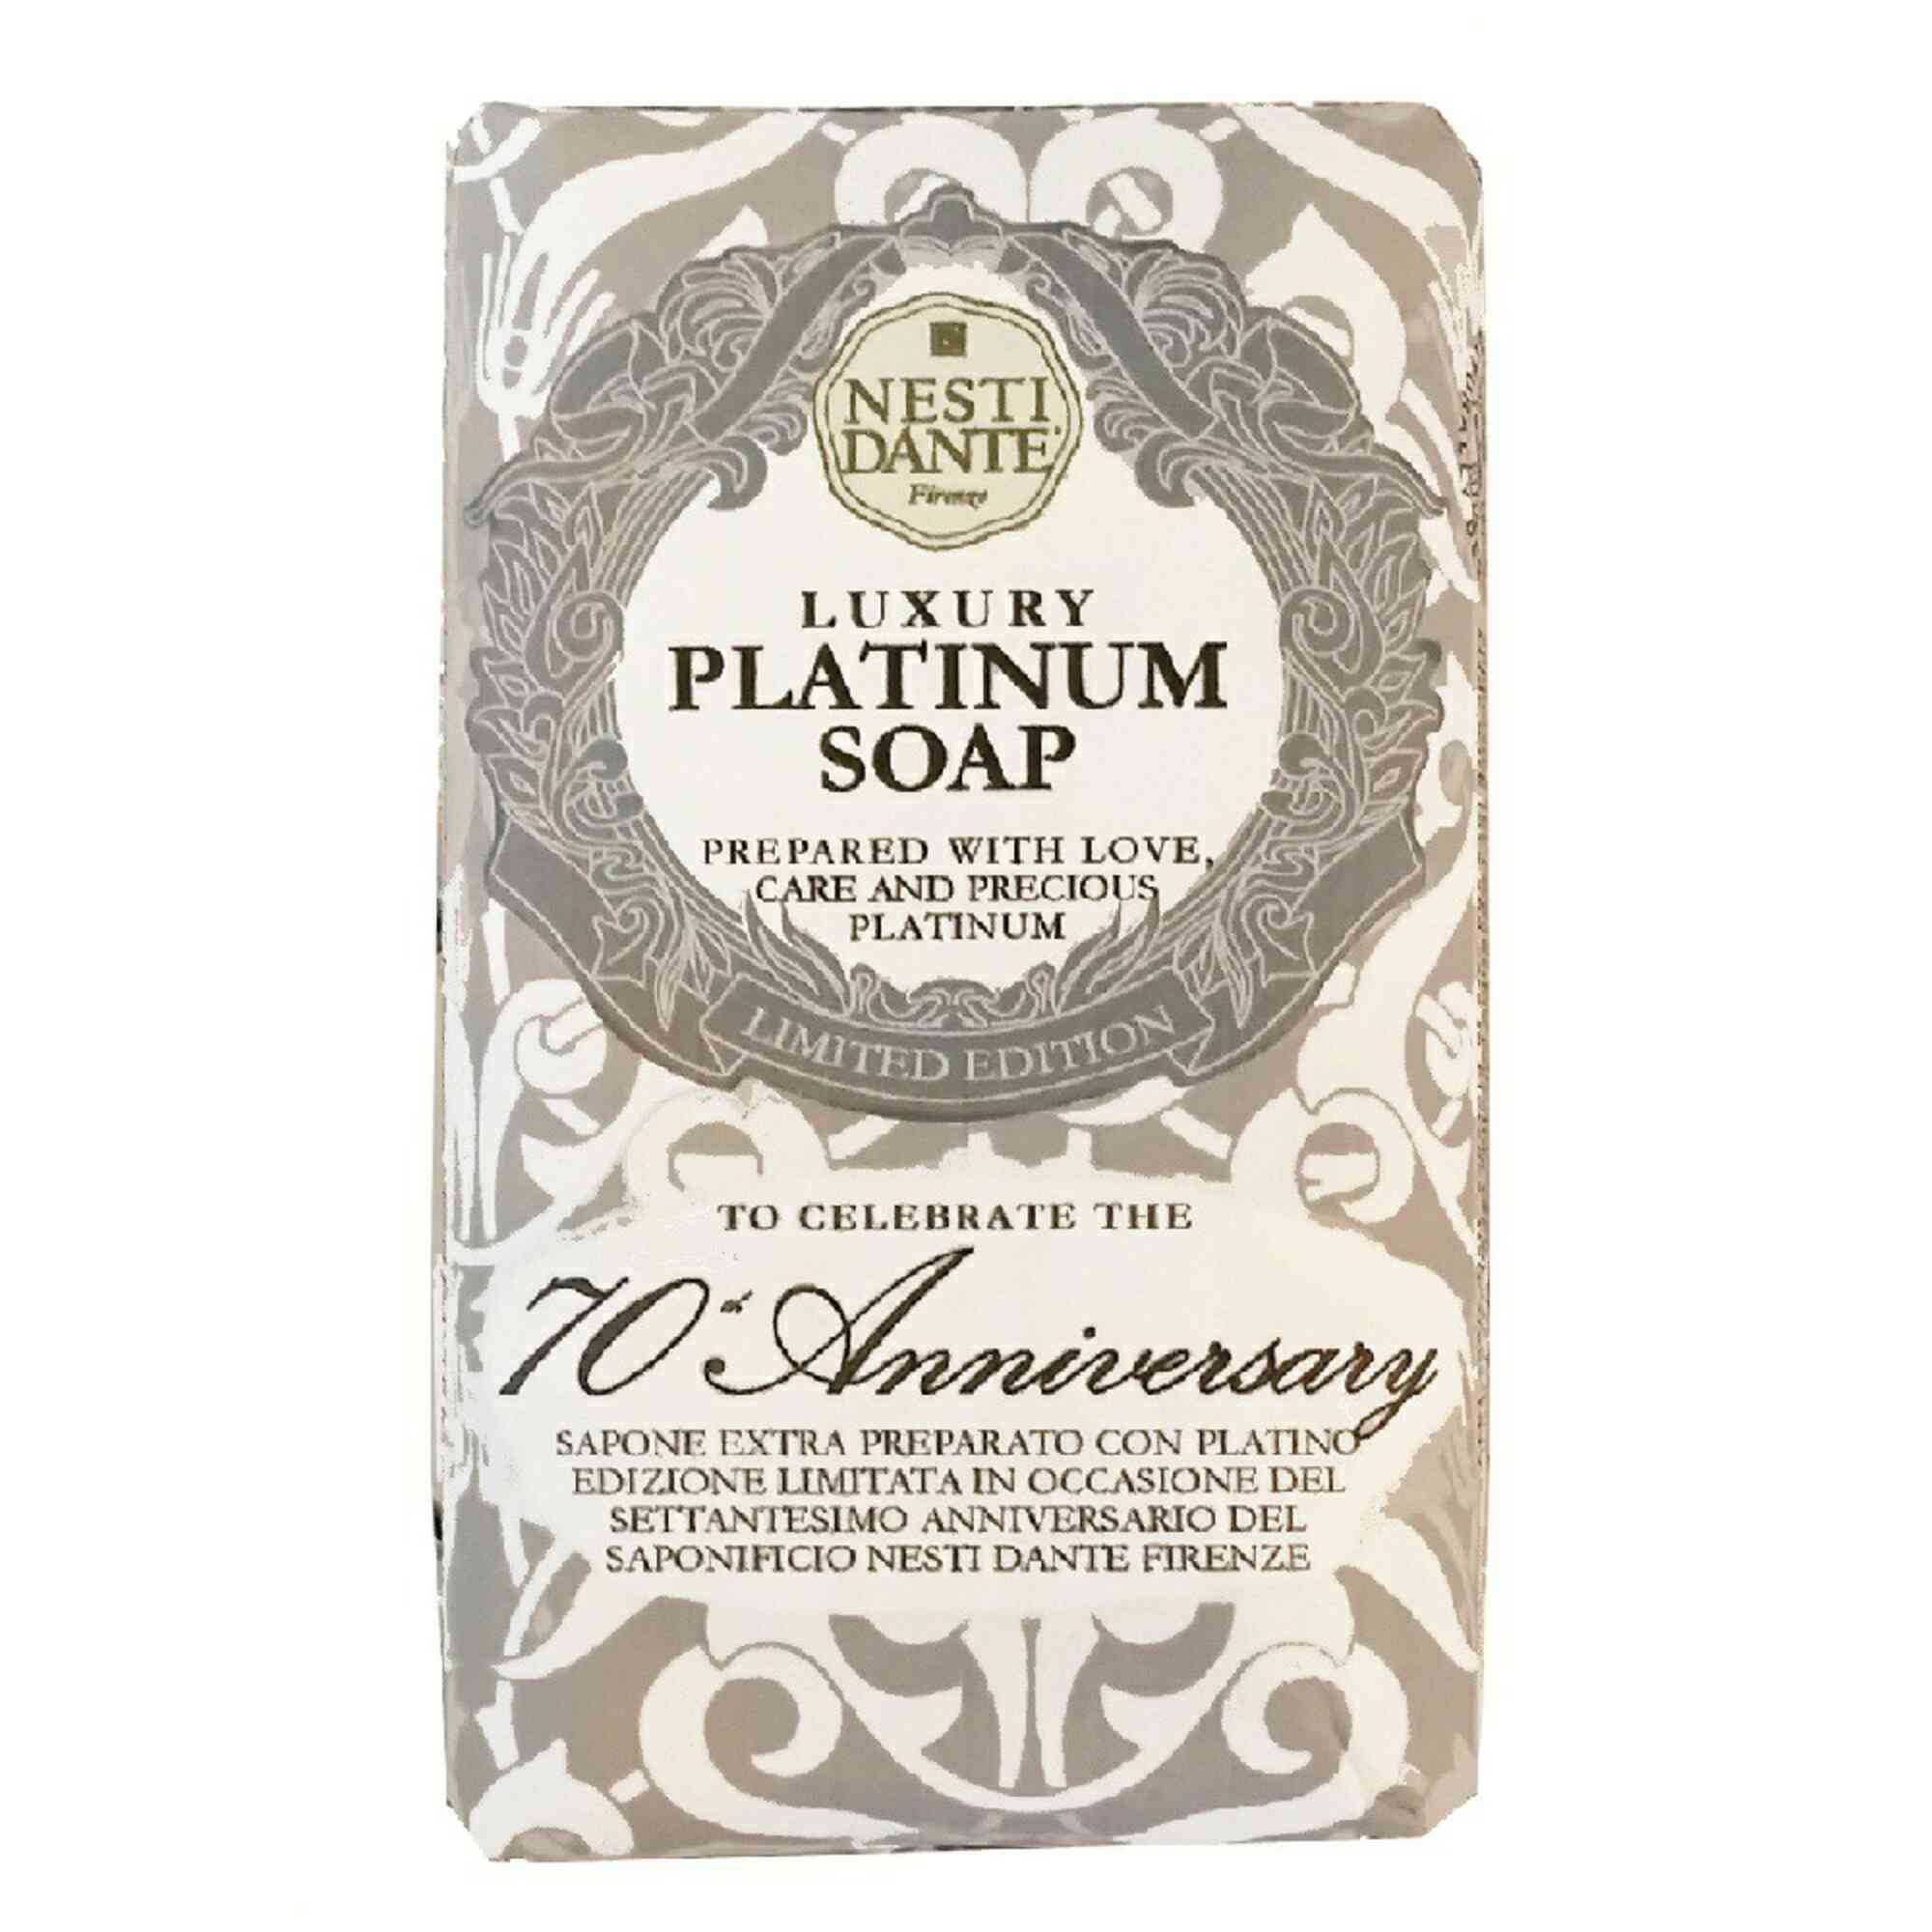 Sabonete Barra Luxury Platinum Soap 250gr Nesti Dante